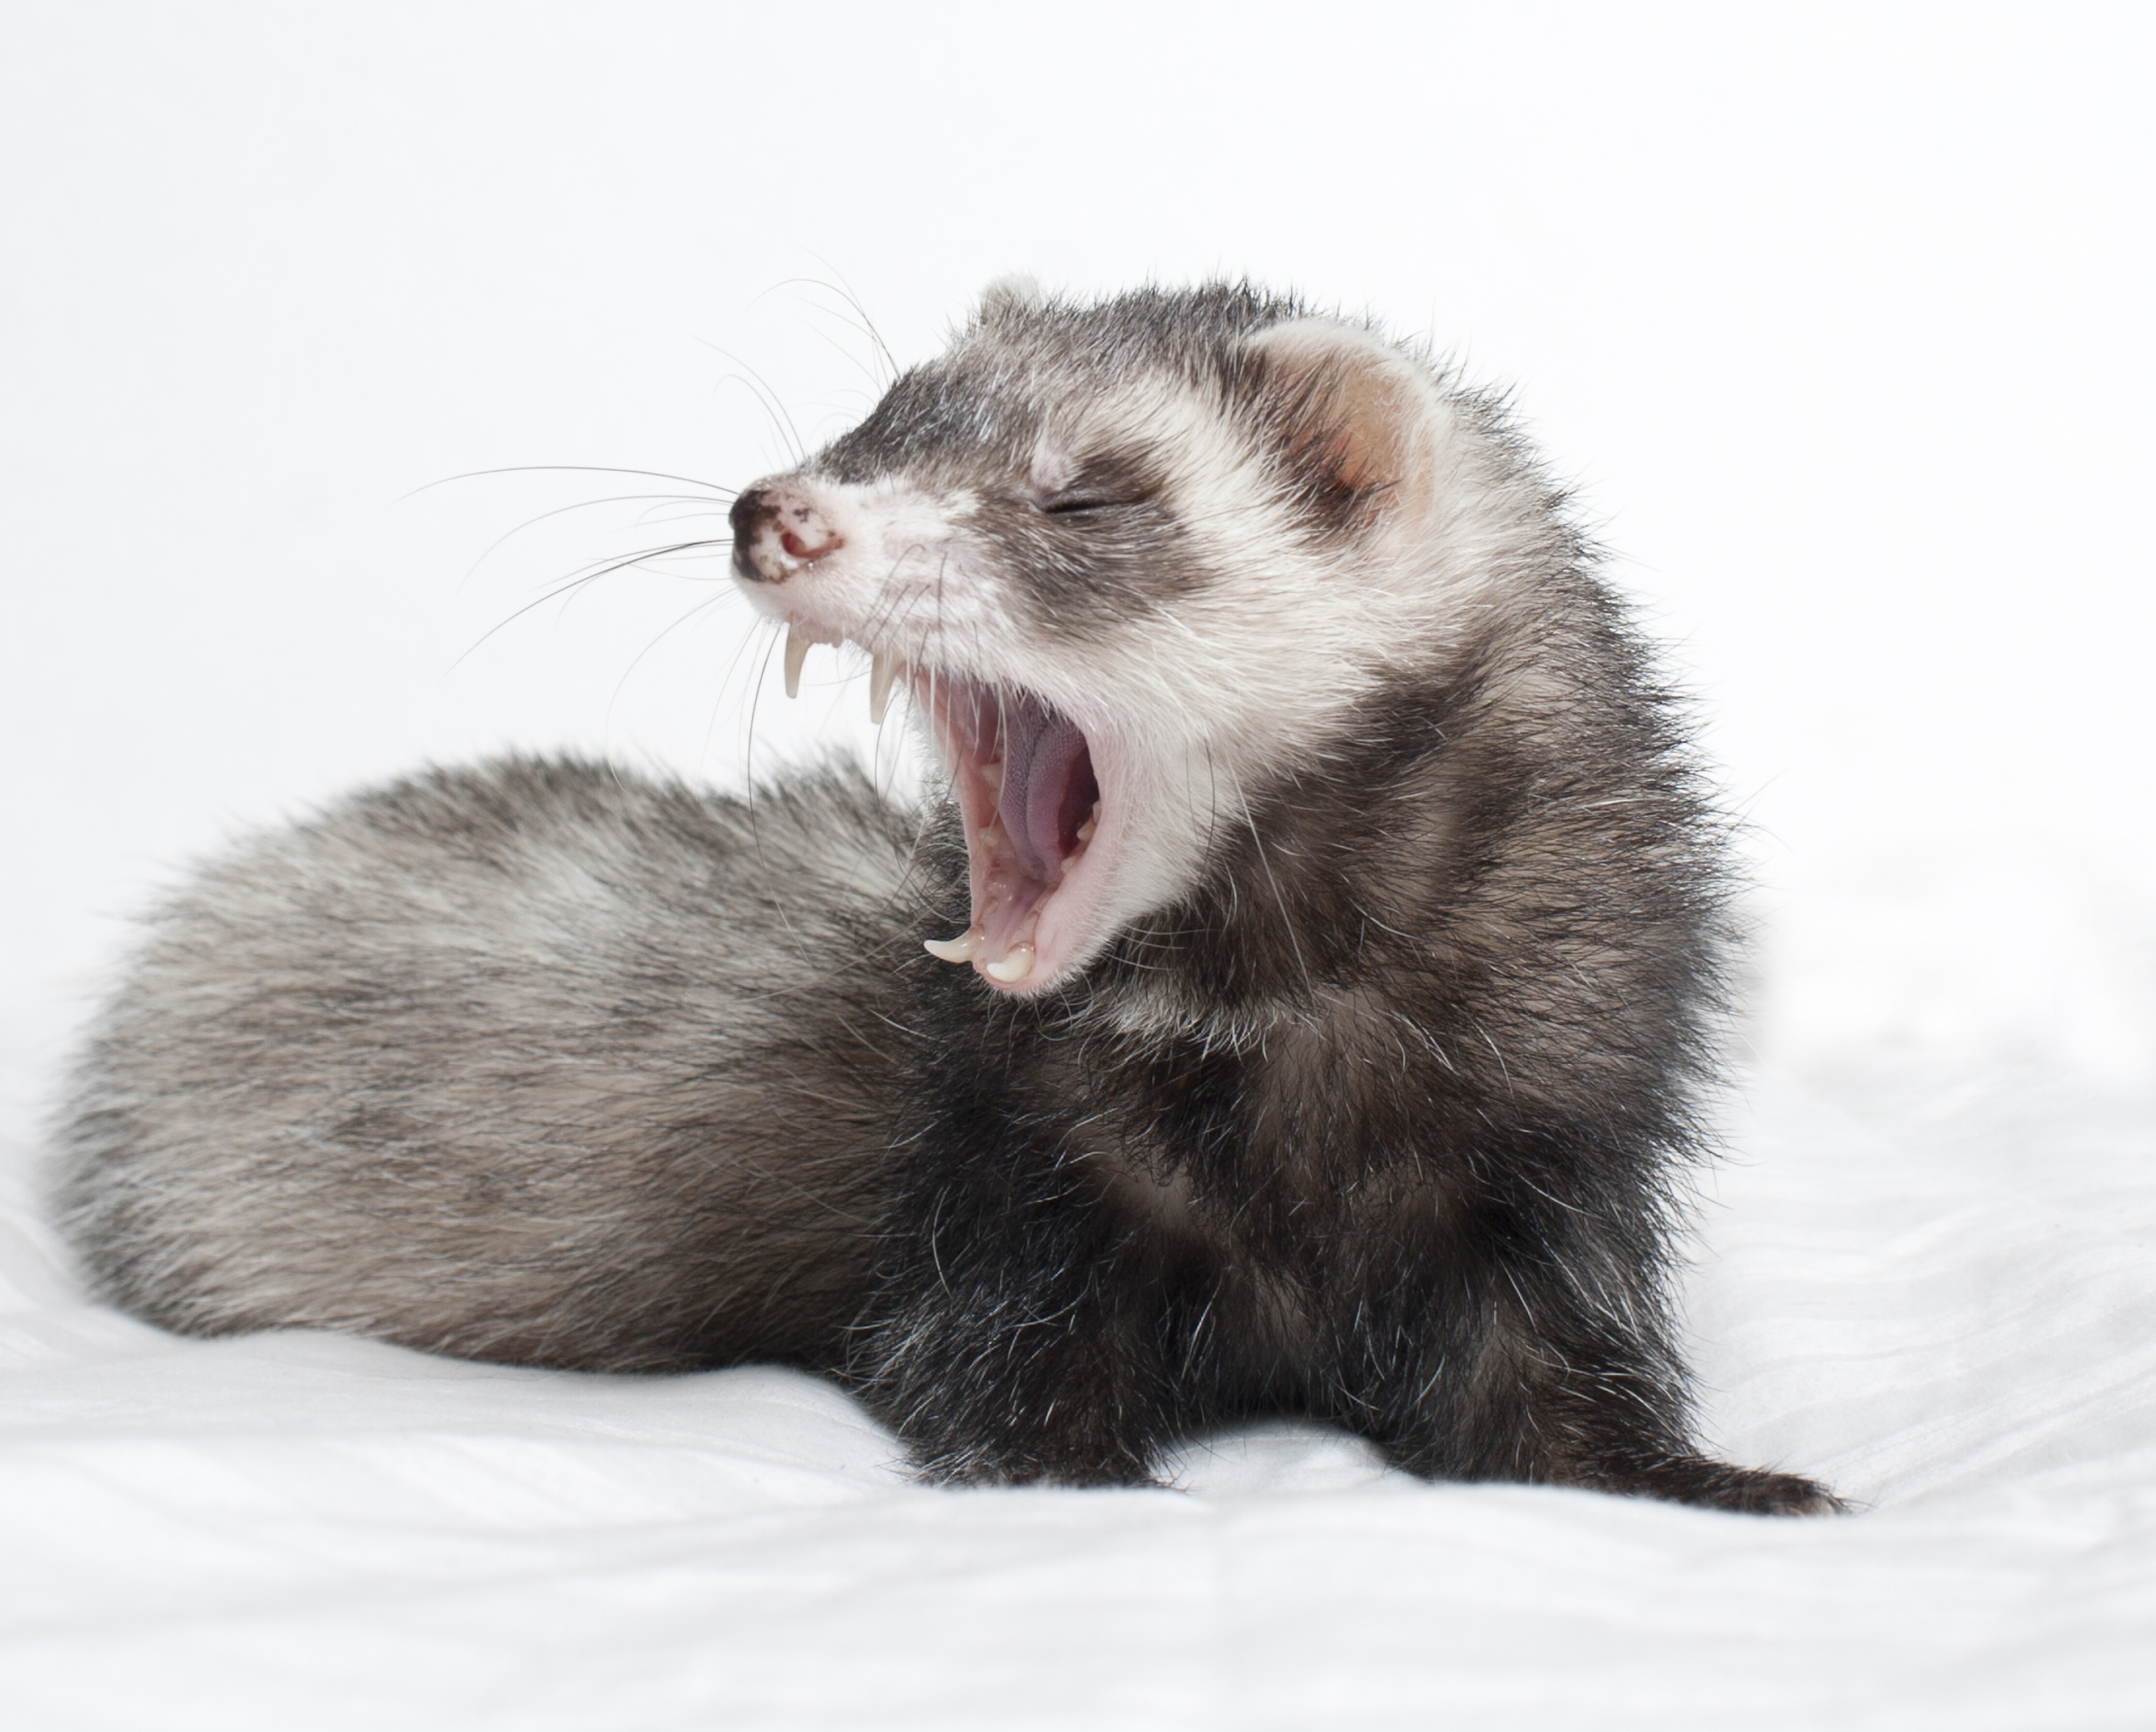 ferret yawning  teeth